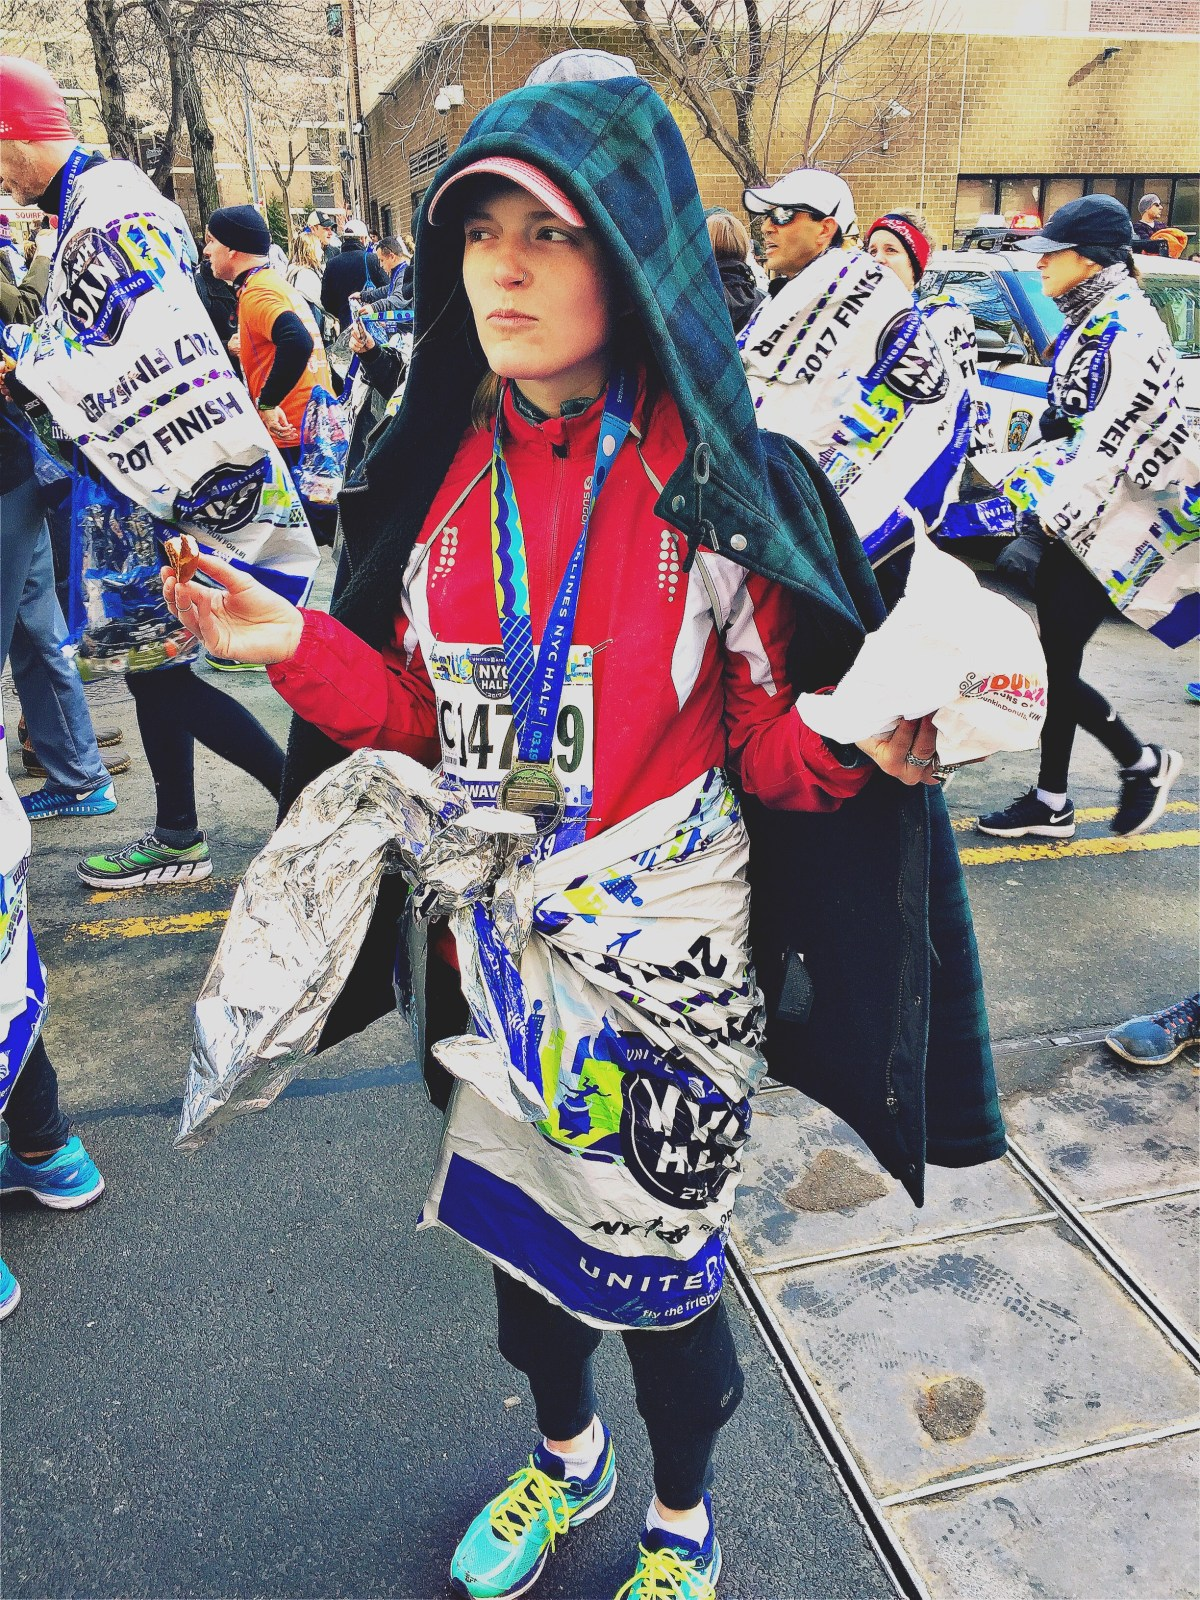 25 THOUGHTS I HAVE WHILE RUNNING A HALF-MARATHON